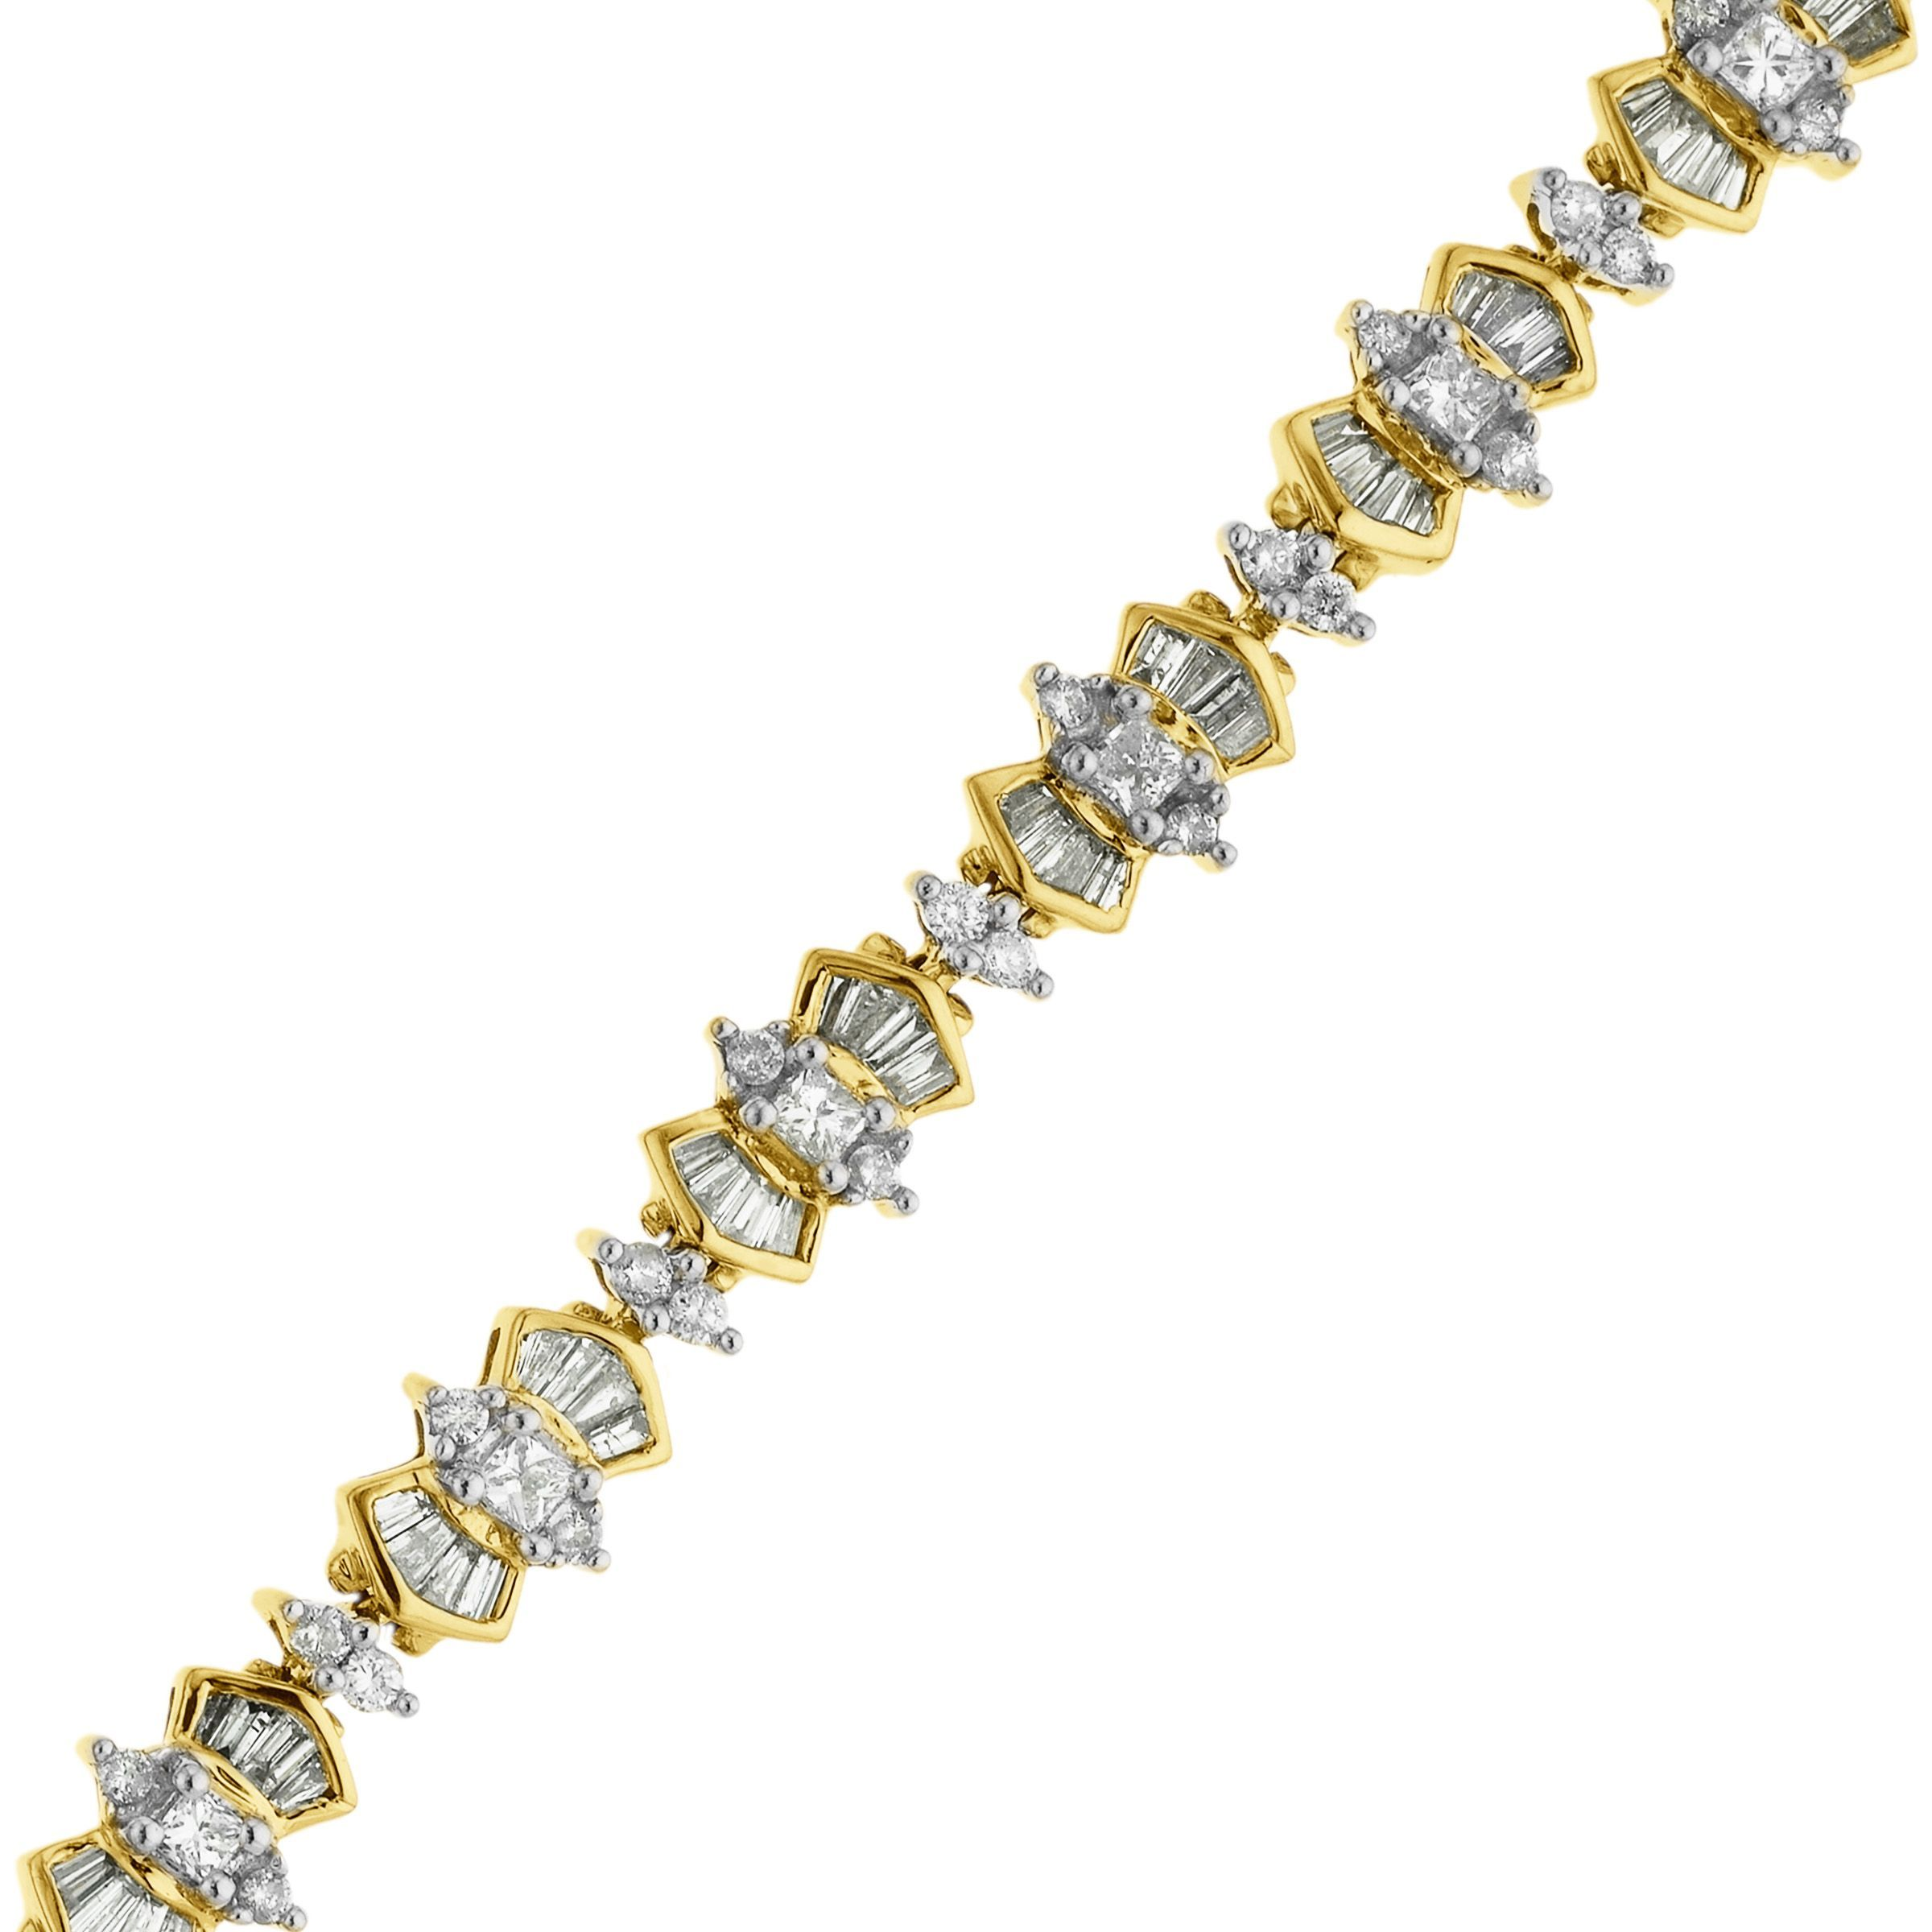 IGI Certified 4 1 2 ct Diamond Bracelet in 14K Gold 7 5